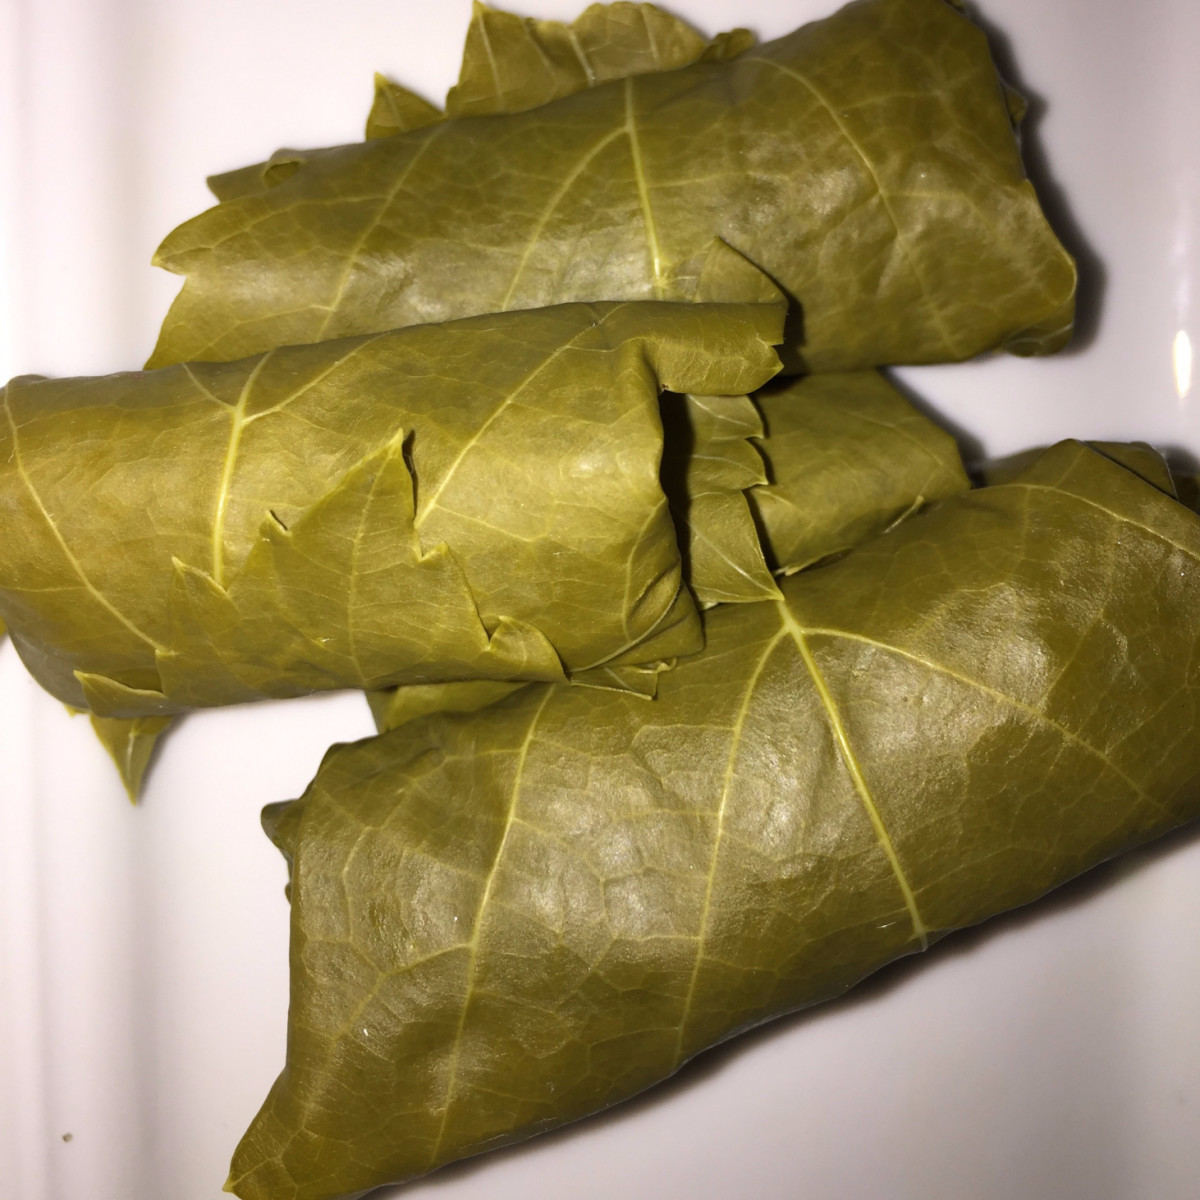 The rolled dolmades prior to cooking. Opa!